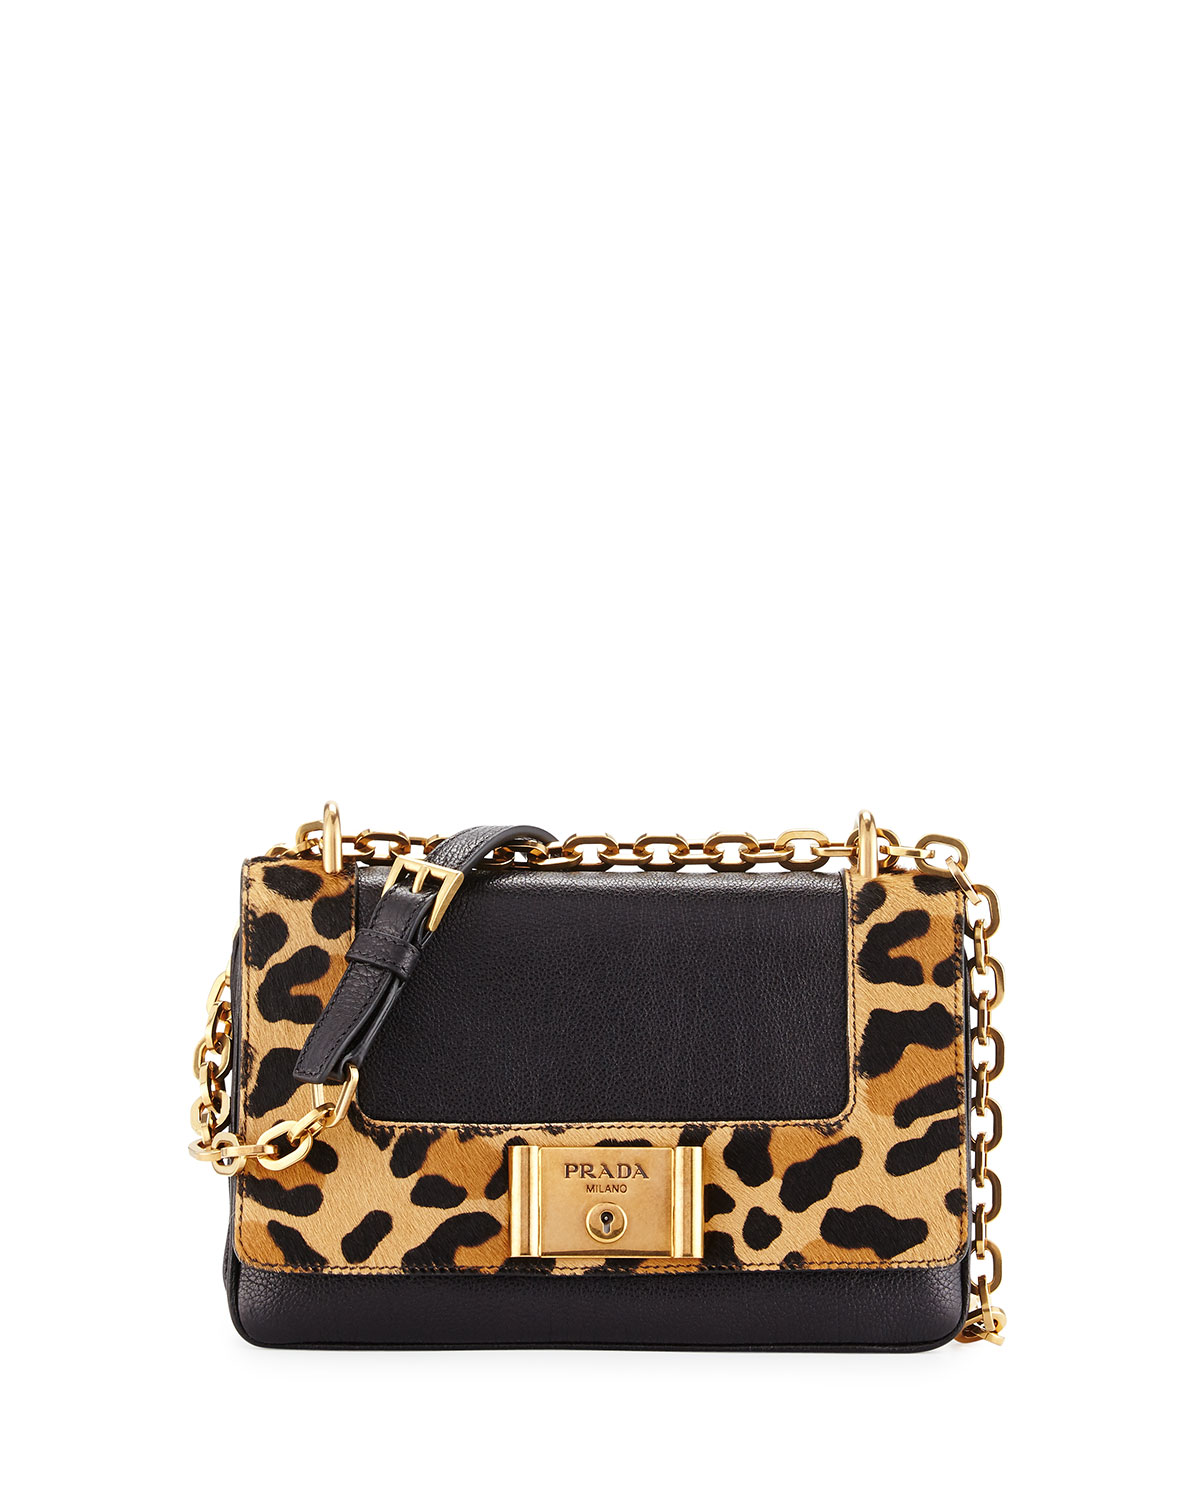 38b5c48bae7bf2 Prada Leopard-Print & Calfskin Flap Shoulder Bag, Black/Honey (Nero+ ...